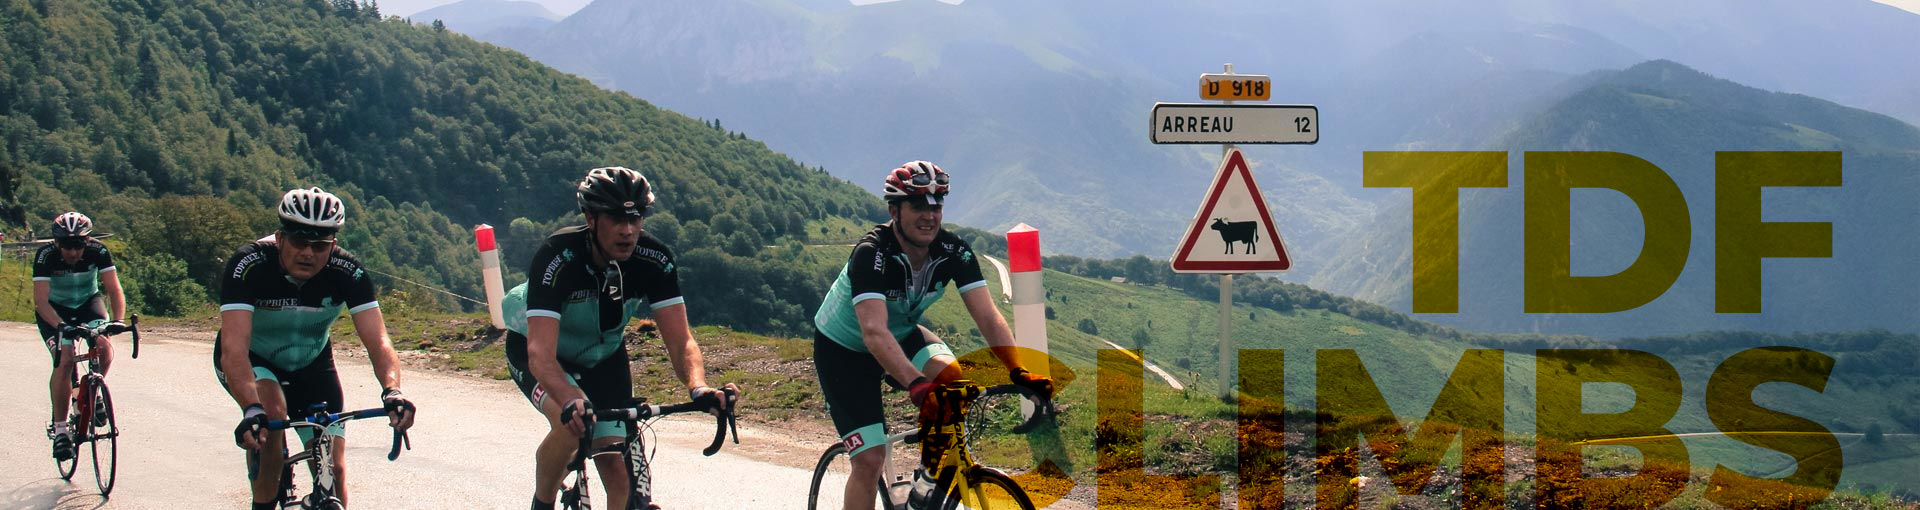 "Cycling to Arreau, 2019 Tour de France Climbs - ""Eat-Drink-Ride-Suffer"" - Topbike Tours"